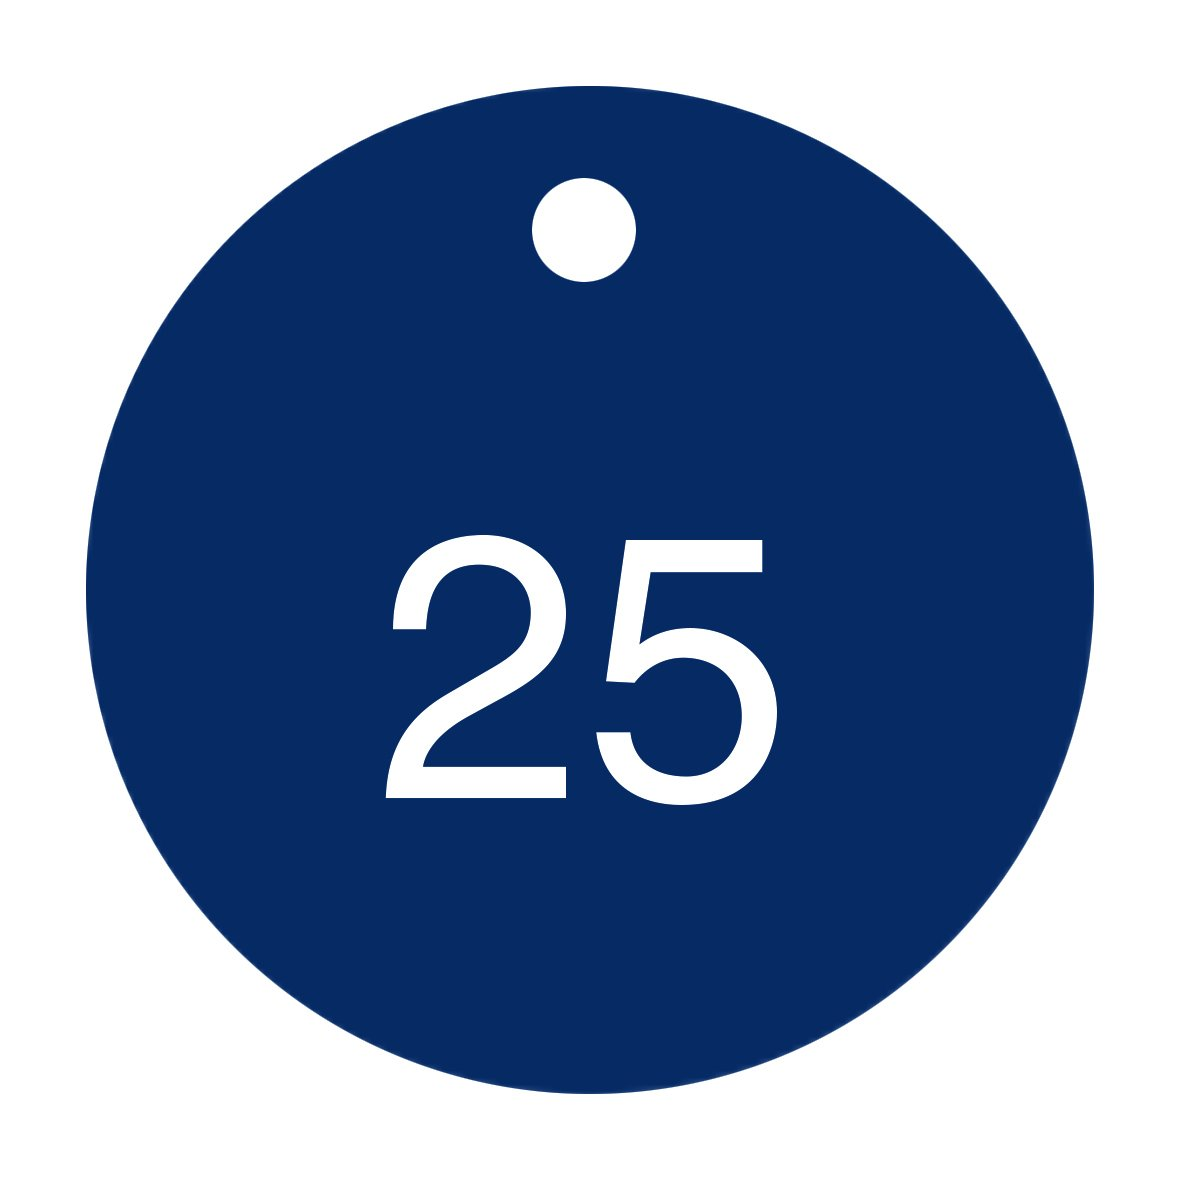 Pack of 25 1 to 25 Series White on Blue 1.5 x 1.5 Circle Accuform TDG361BU Accu-Ply Plastic Engraved Numbered Tag